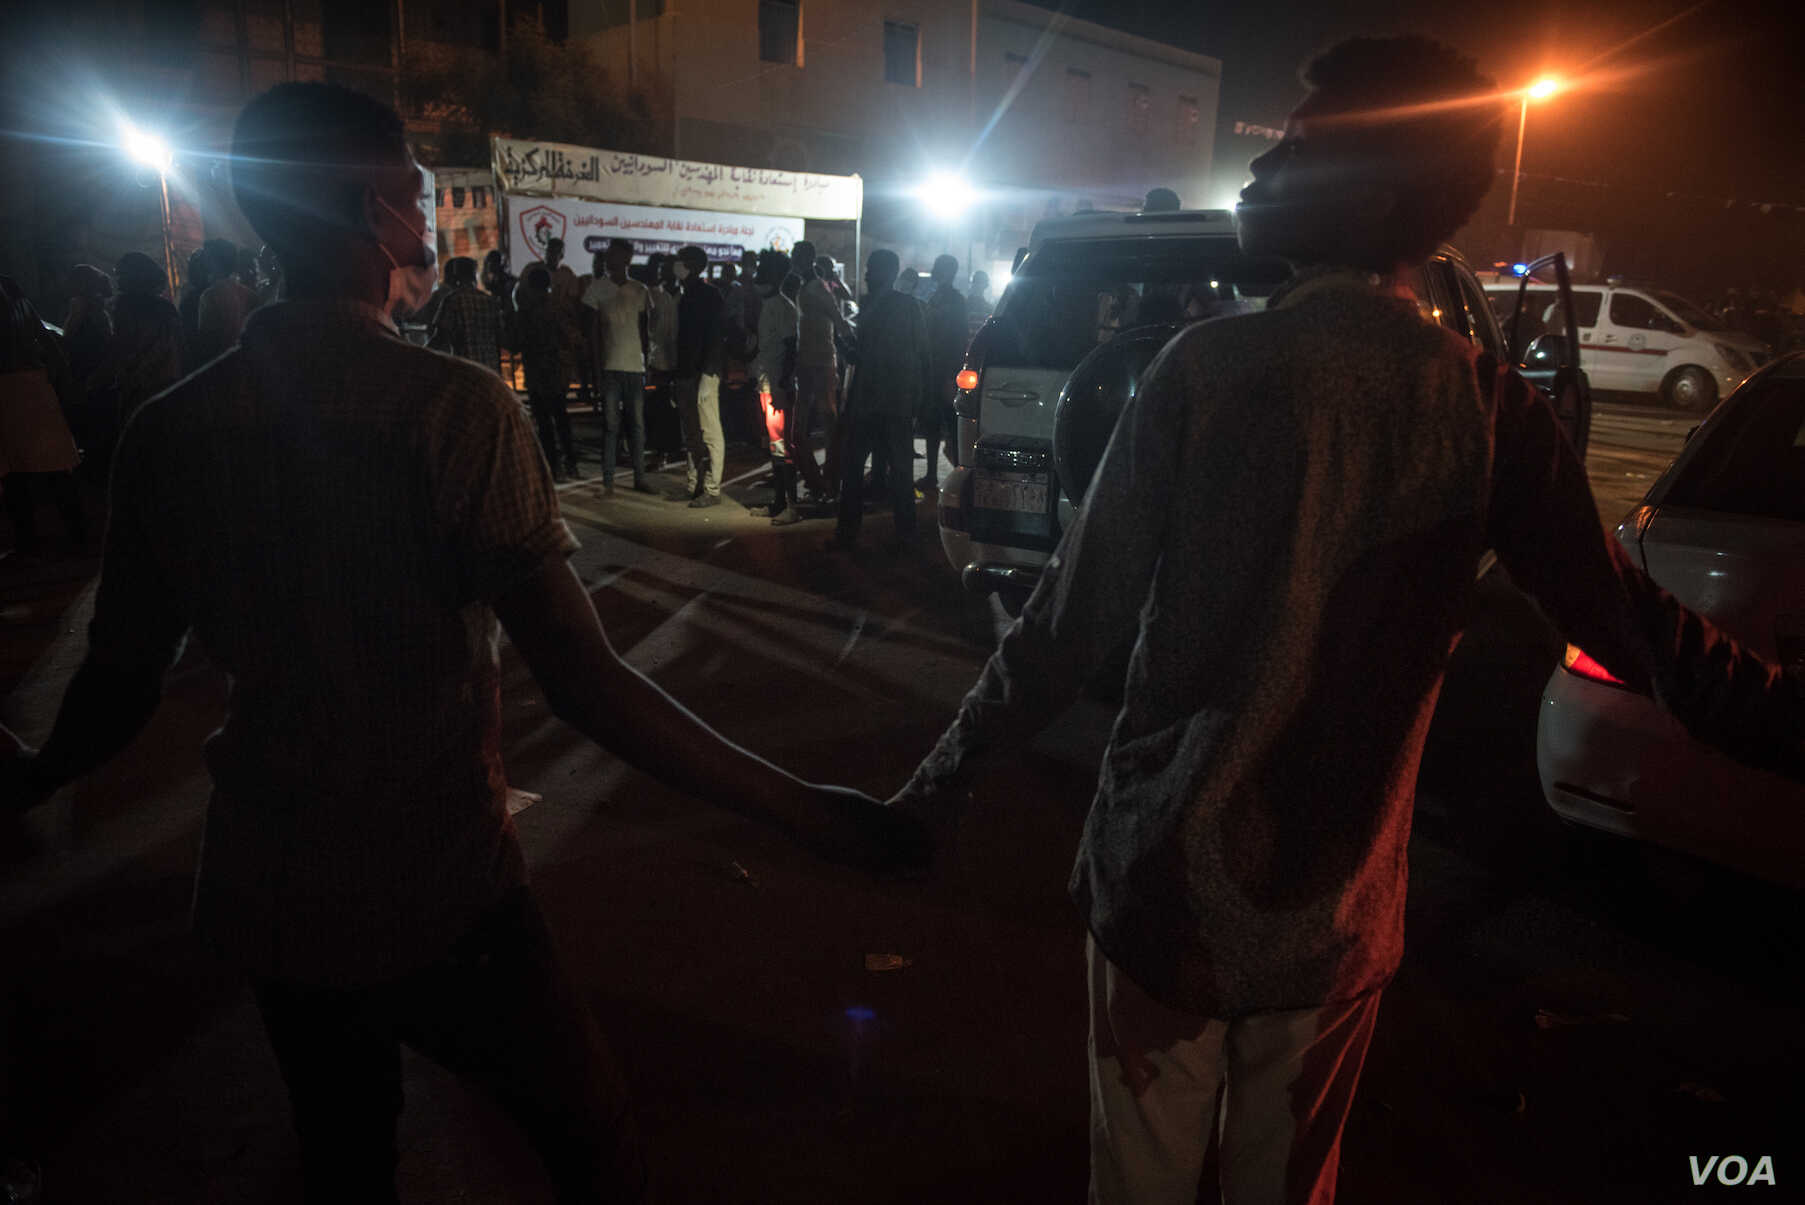 Protesters hold hands to create a cordon to create space for ambulances and other vehicles transporting wounded to hospital. (J. Patinkin for VOA)